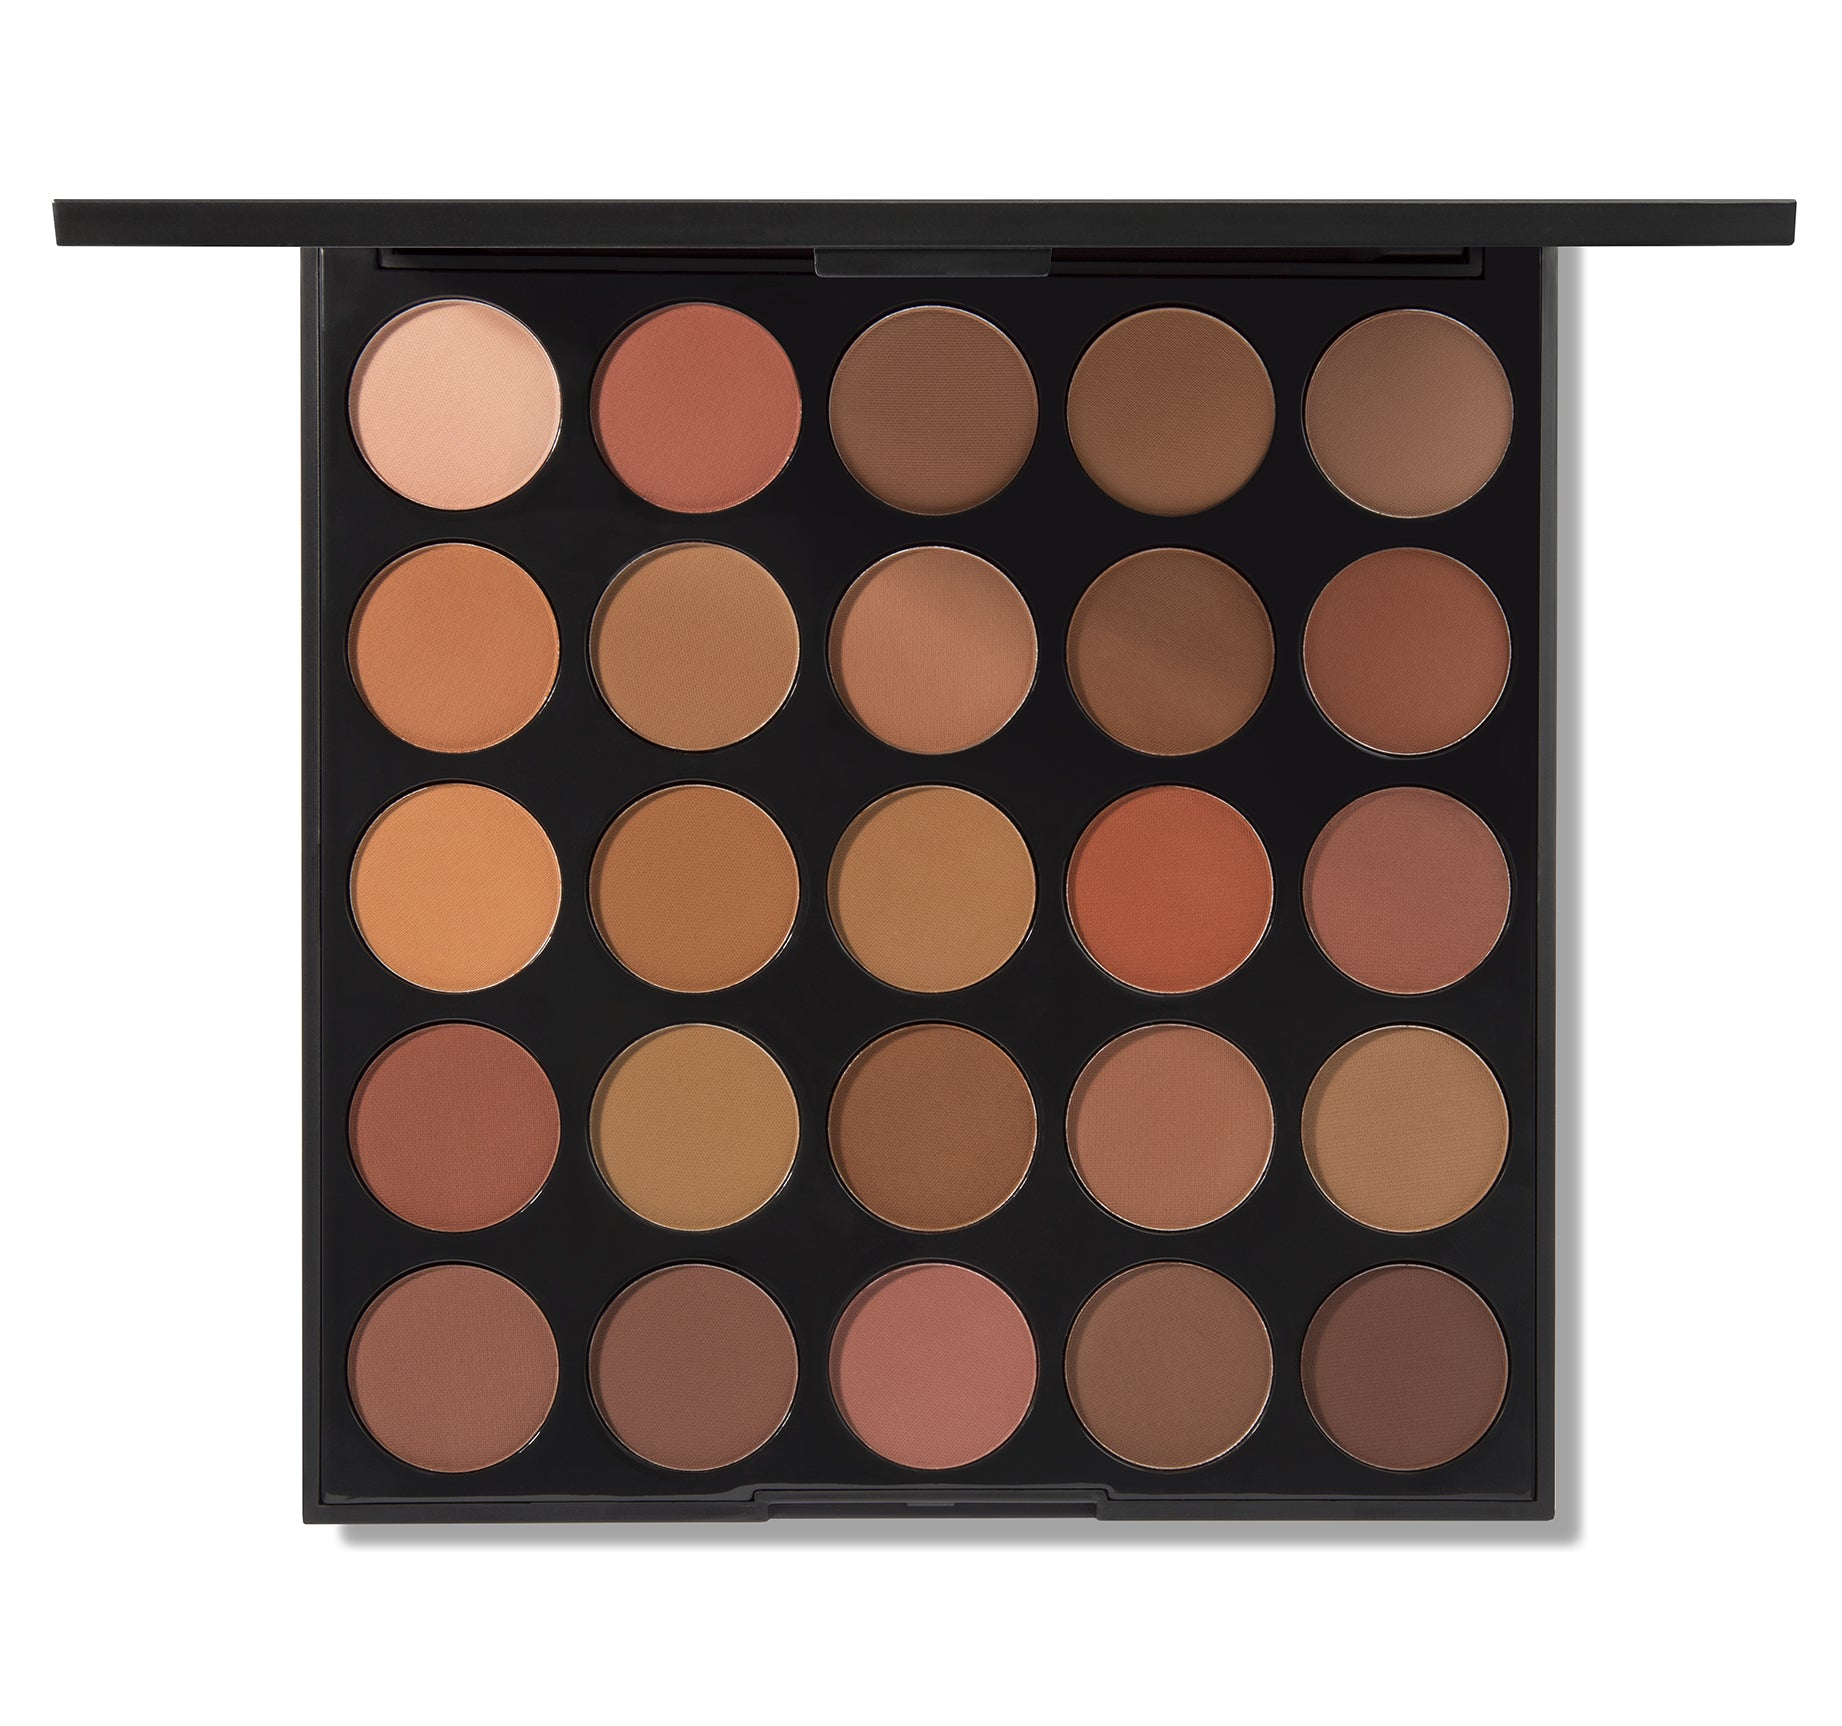 25D OH BOY ARTISTRY PALETTE, view larger image